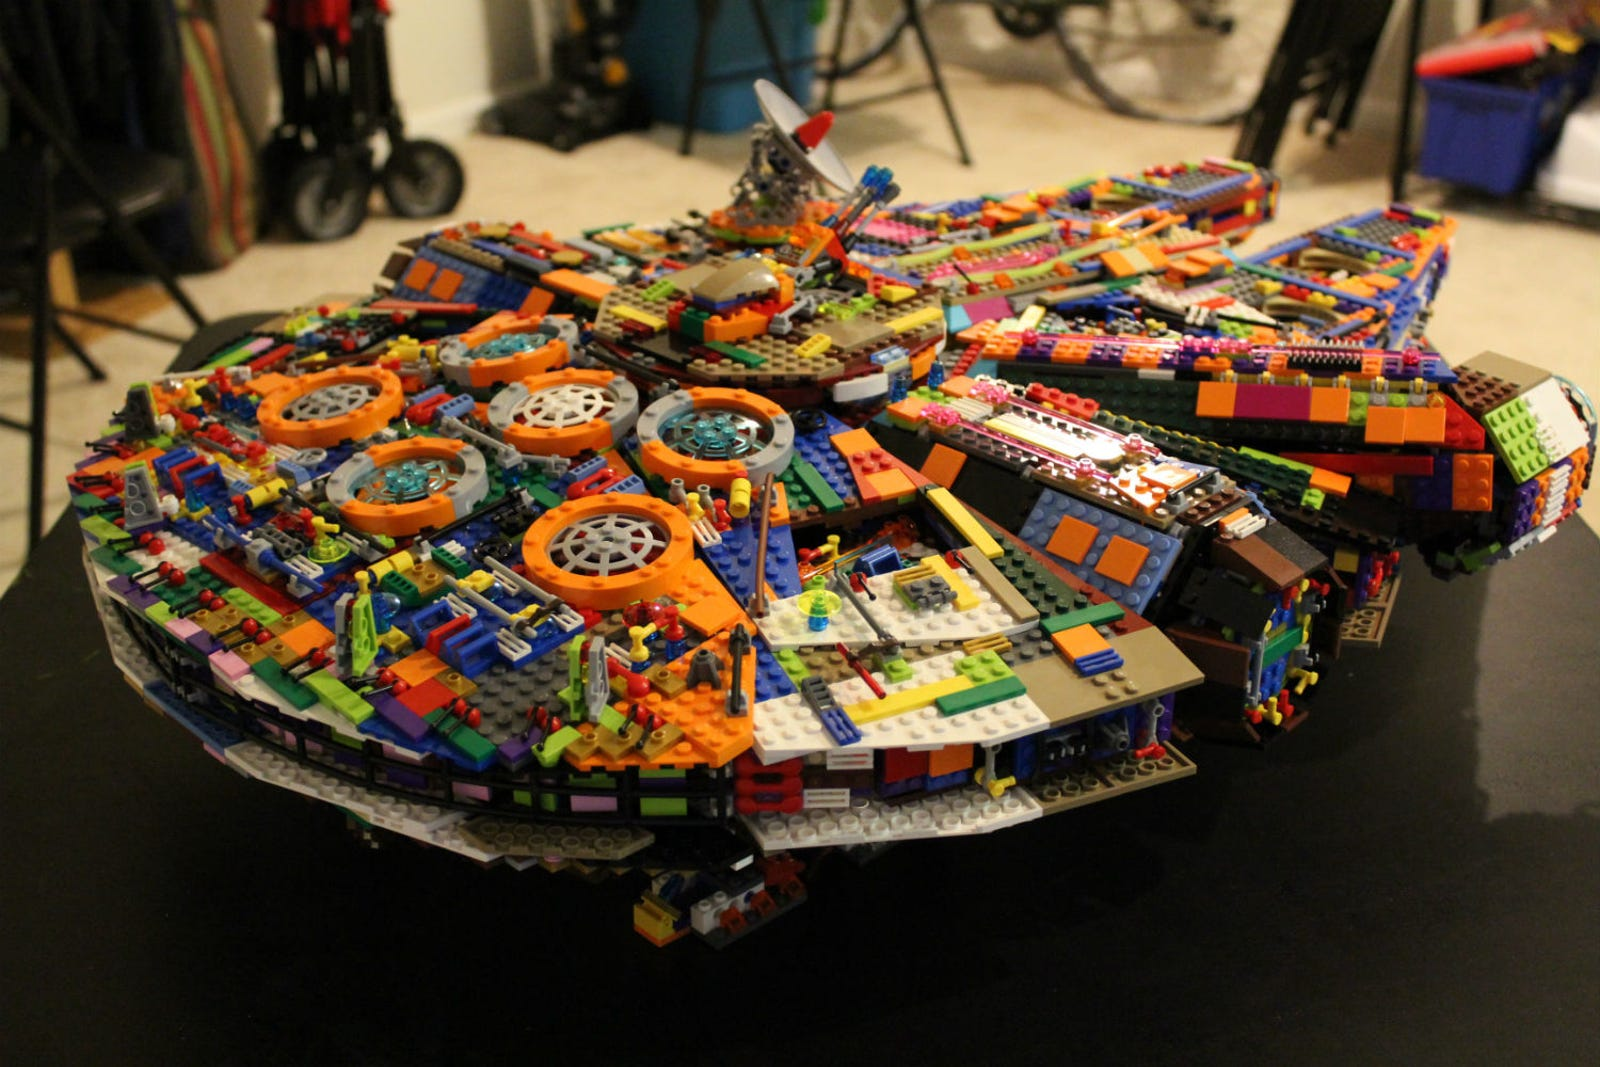 Illustration for article titled This Is the Coolest Homemade Lego Millennium Falcon of All Time